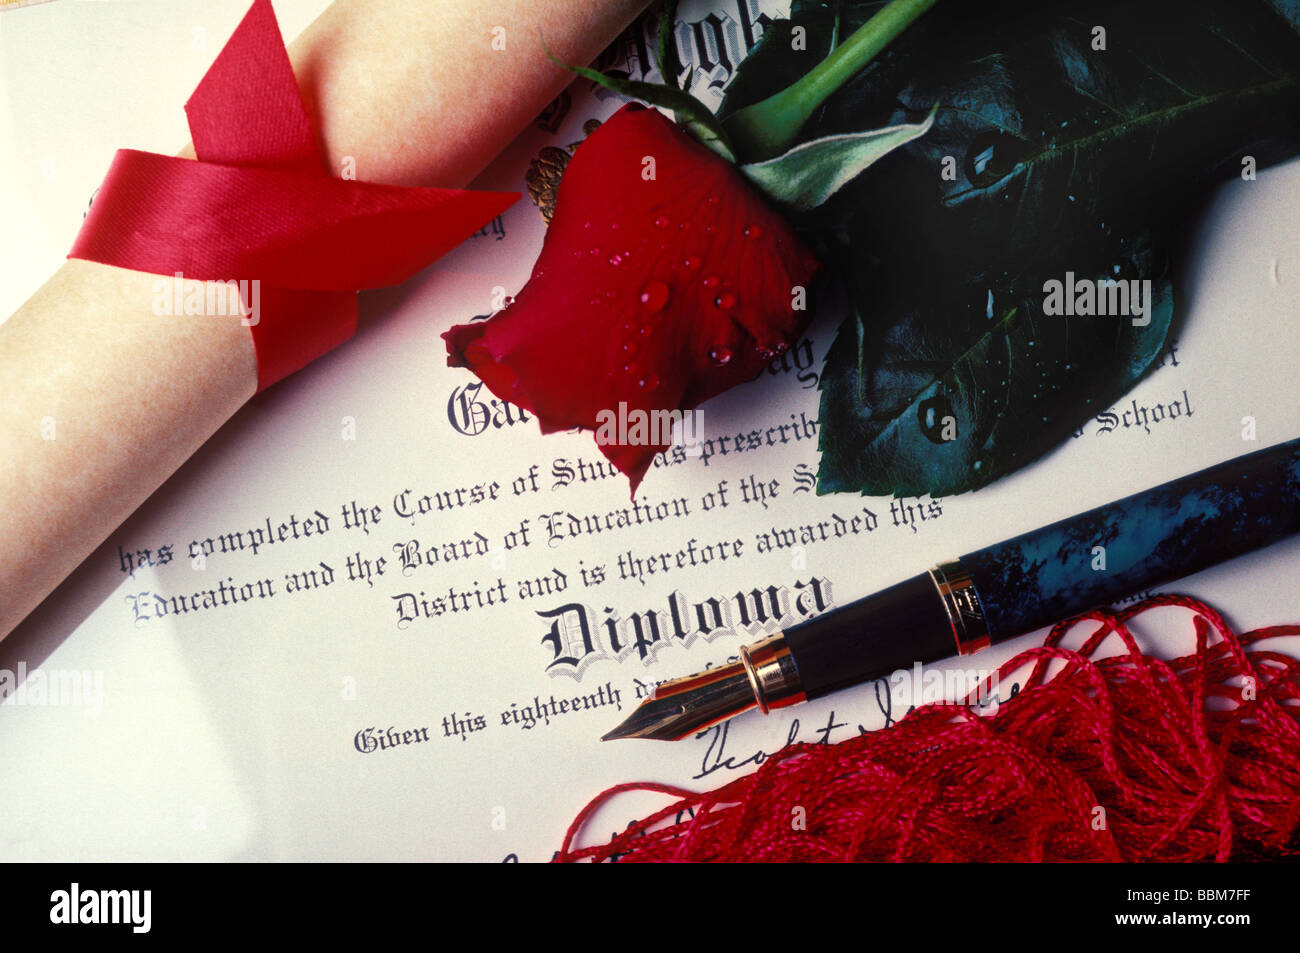 Diploma and red rose with fountain pen - Stock Image